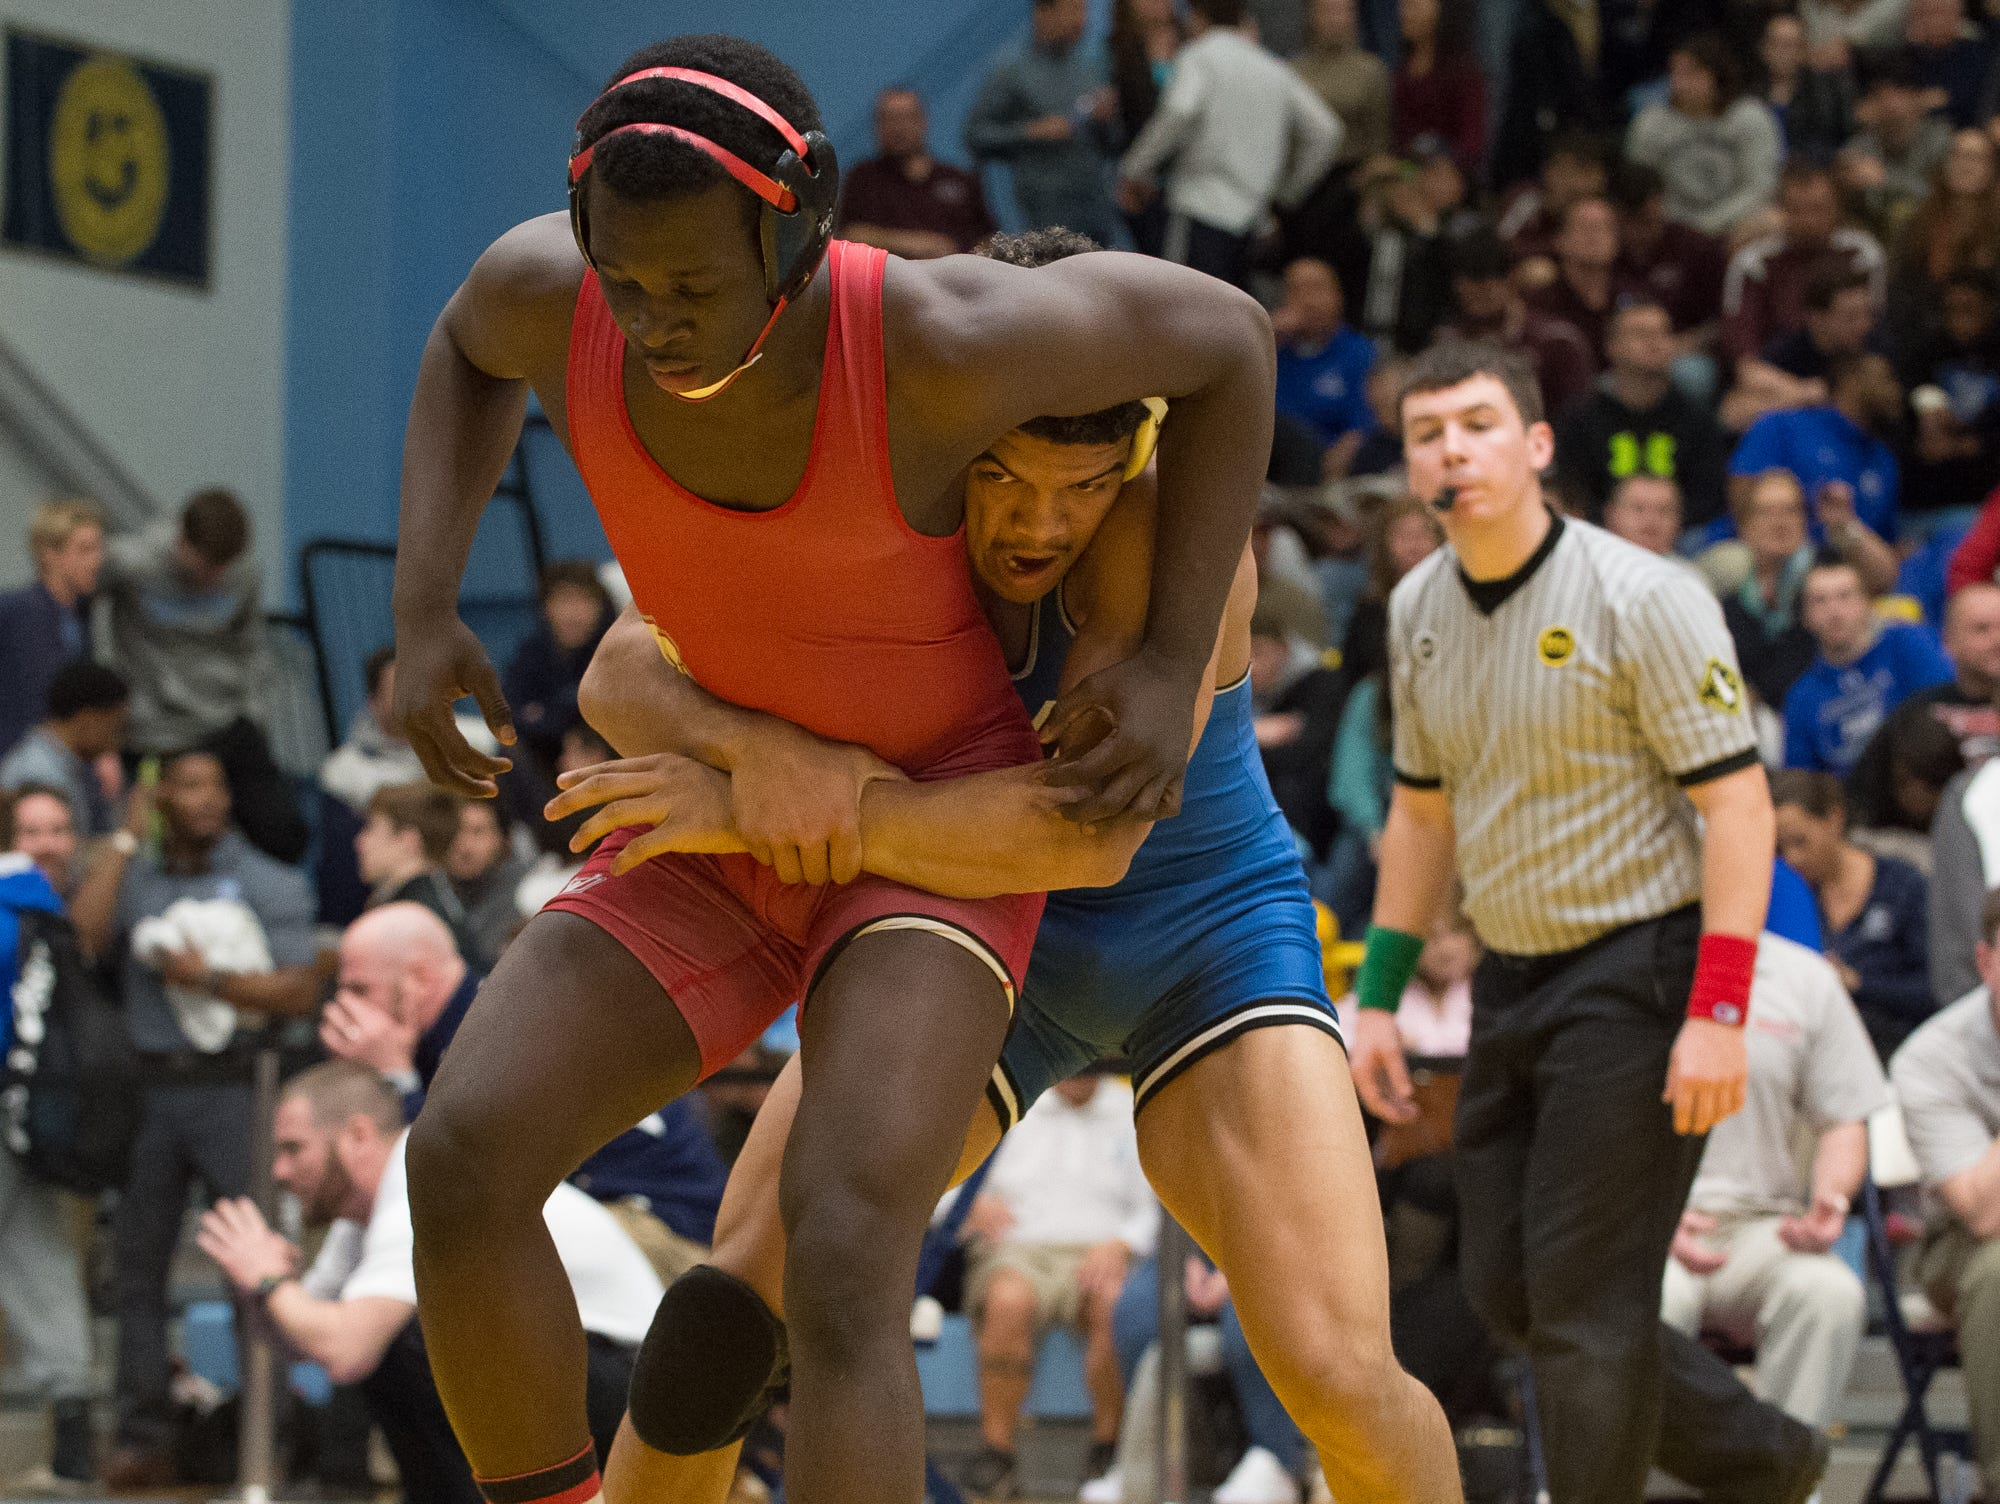 Smyrna's Larsen Wilson, left tries to get out of a hold by Middletown's Isiah Mitchell in the 170 pound quarterfinals at the DIAA Individual State Tournament at Cape Henlopen High School.